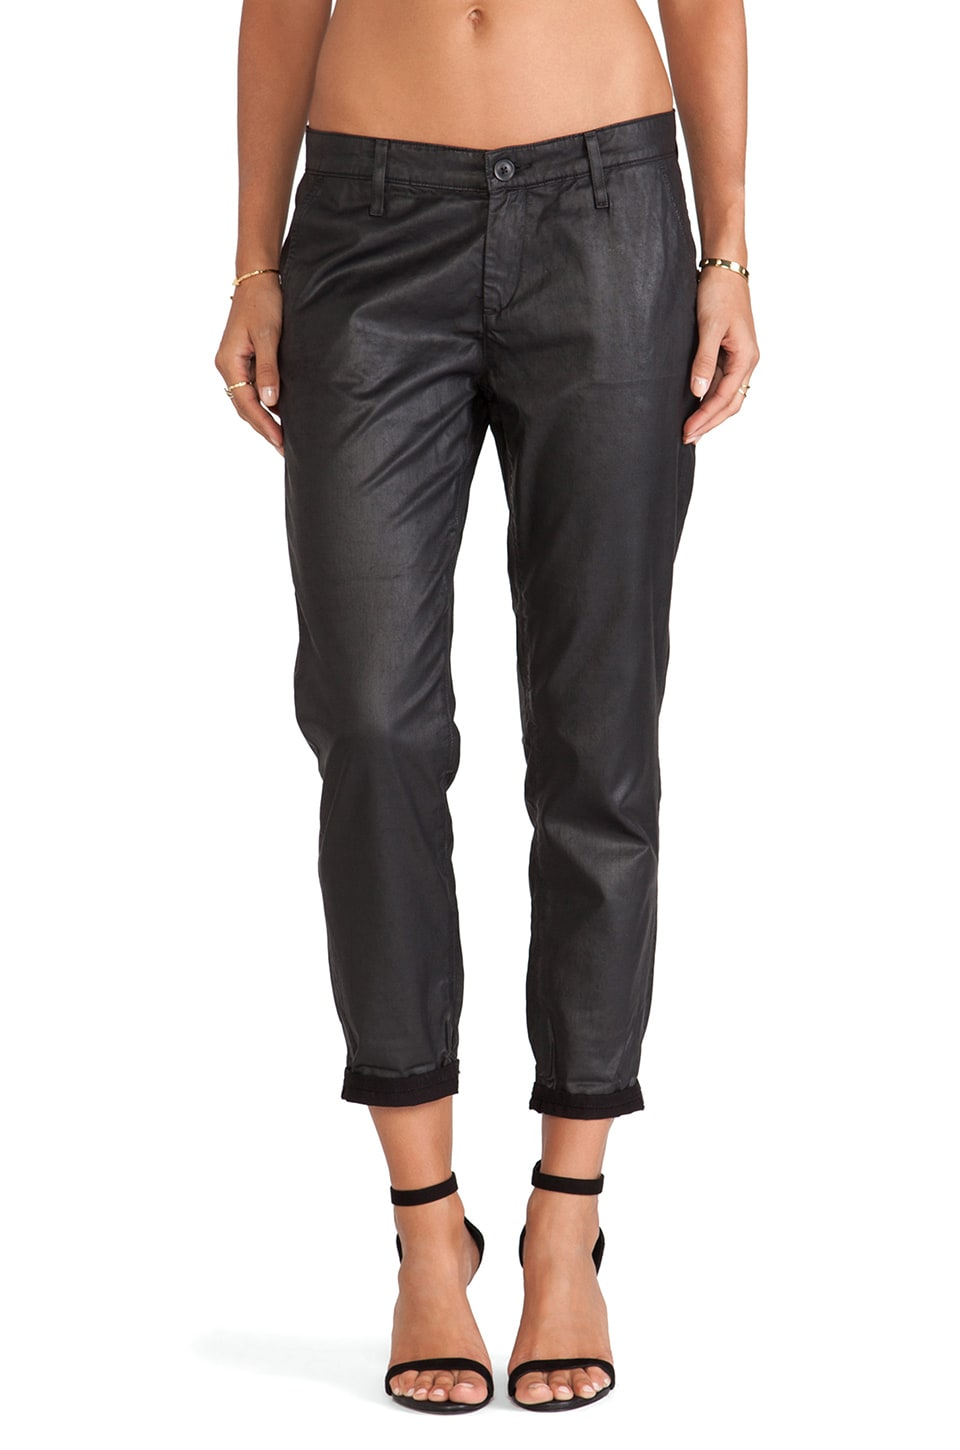 AG Adriano Goldschmied The Tristan in Leatherette in LT-Super Black